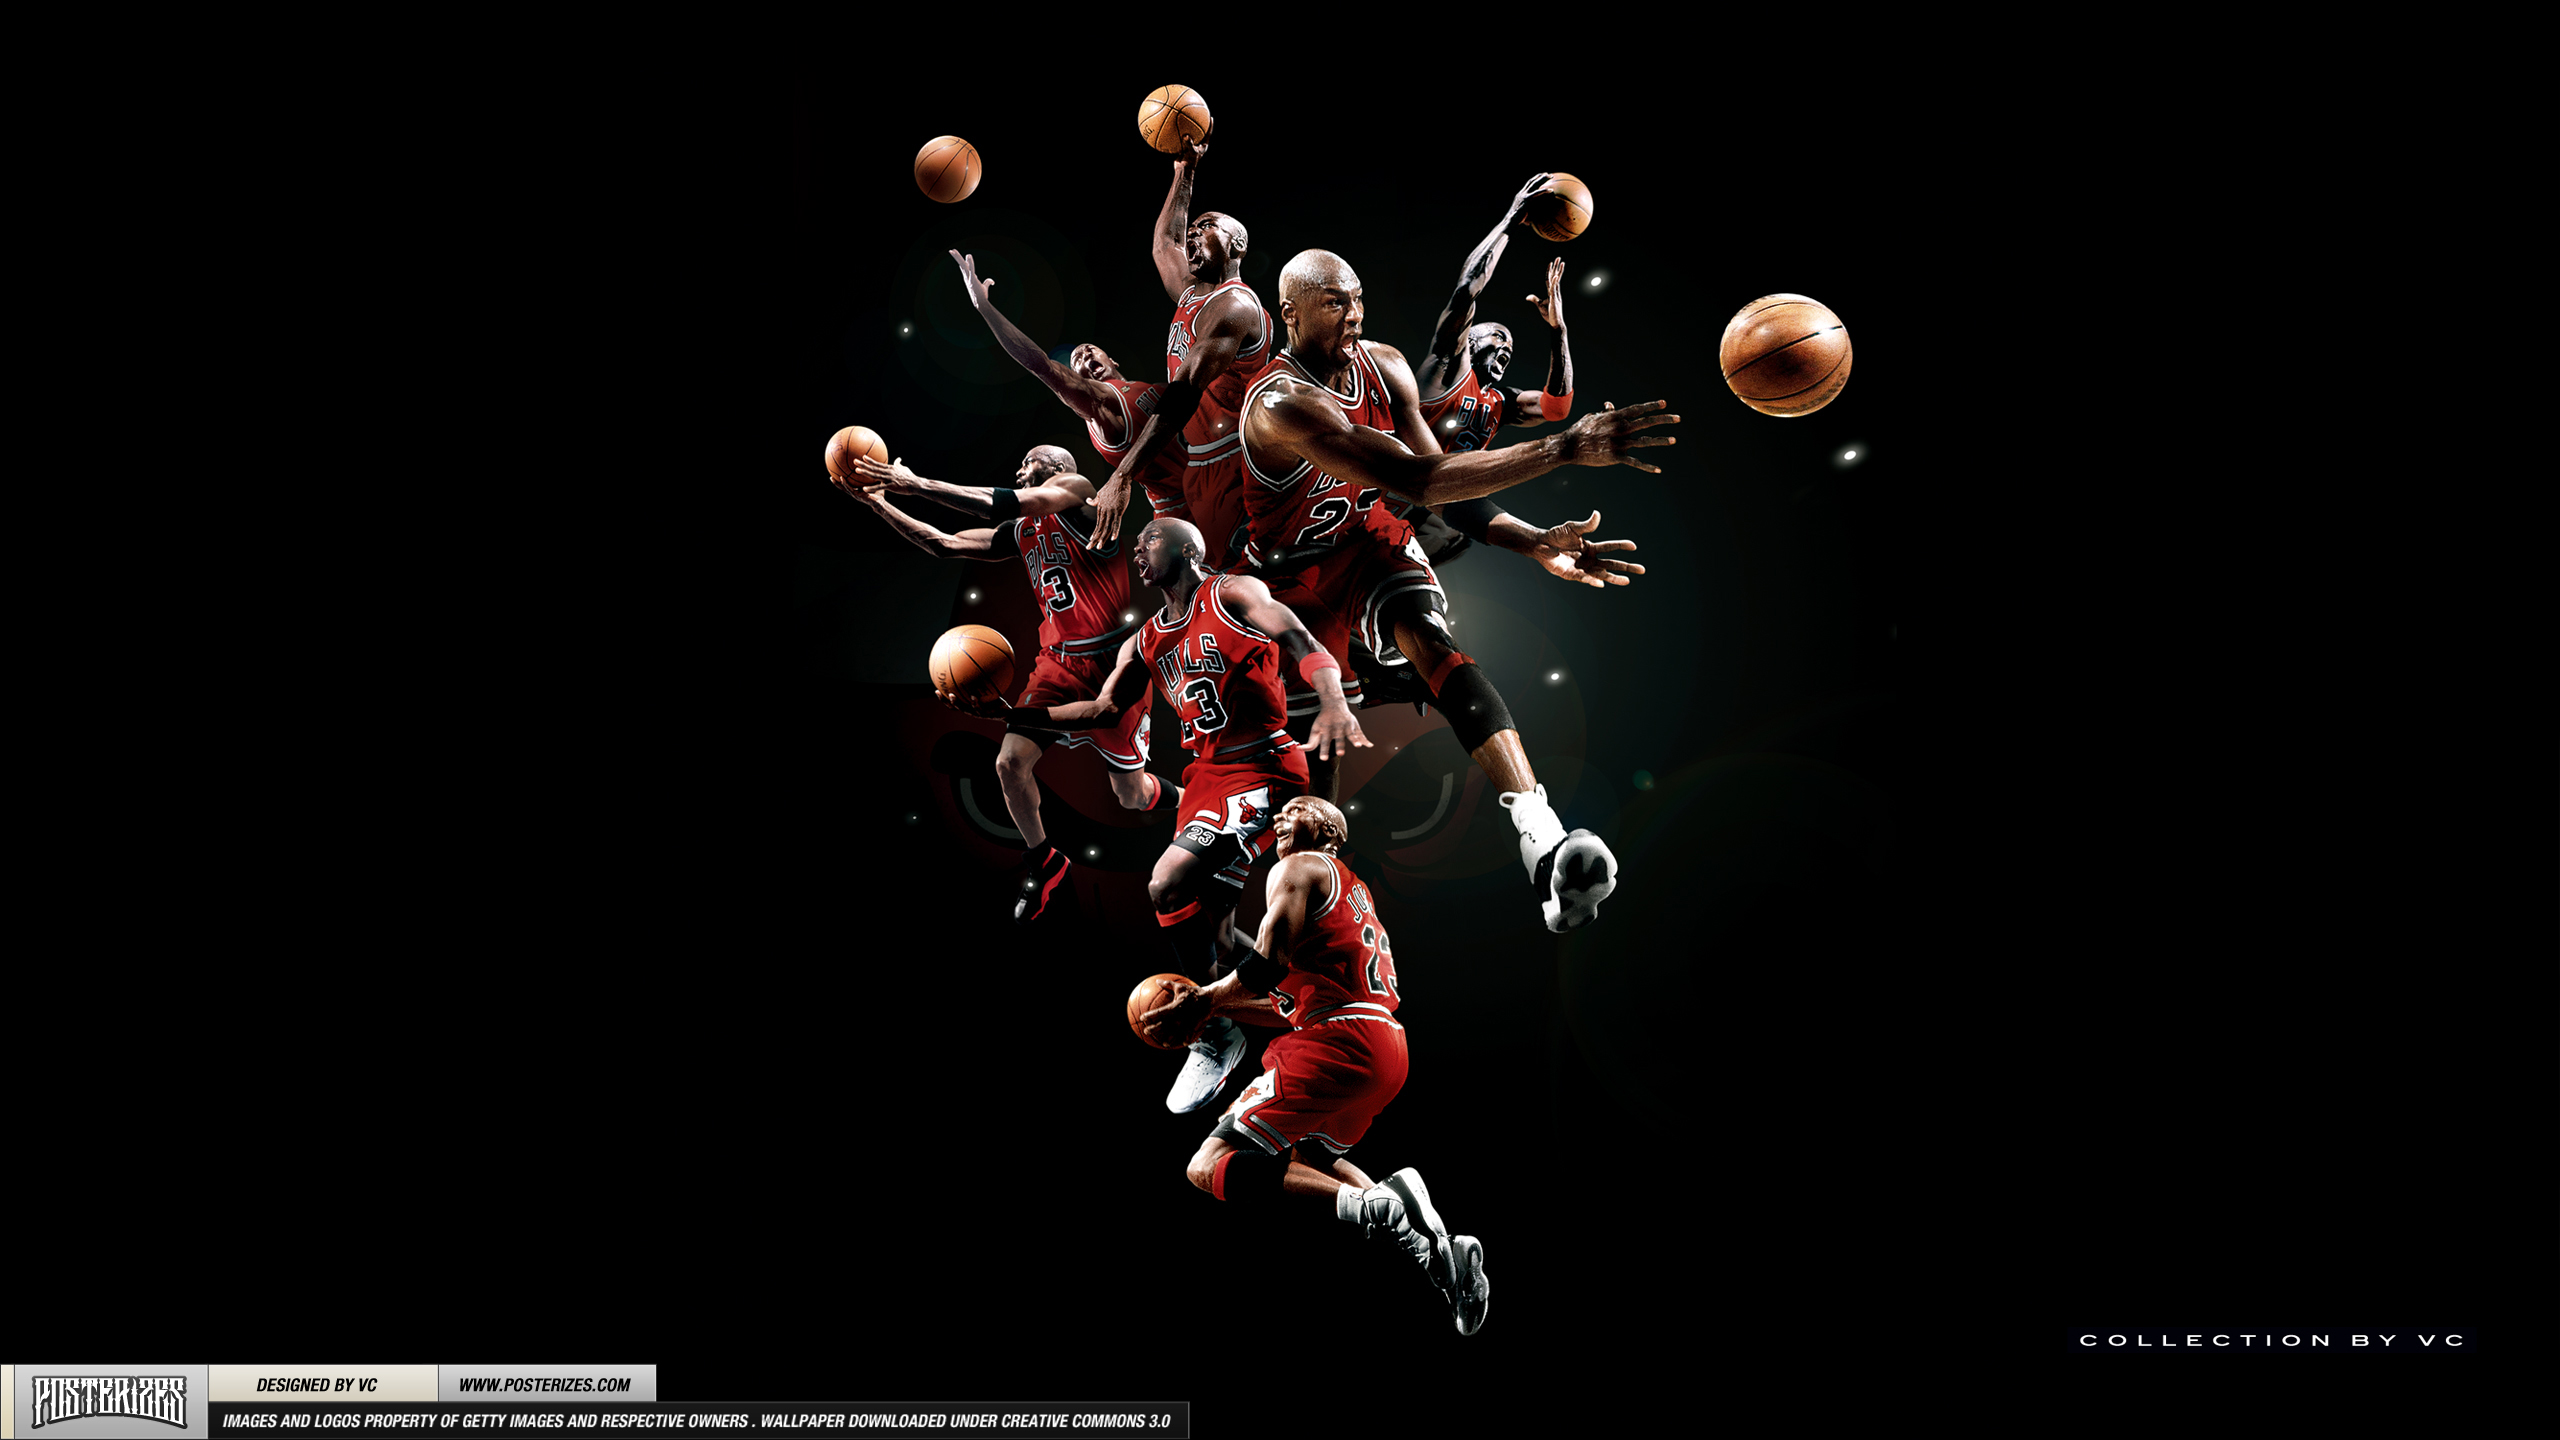 michael jordan wallpaper awsome HD Desktop Wallpapers 4k HD